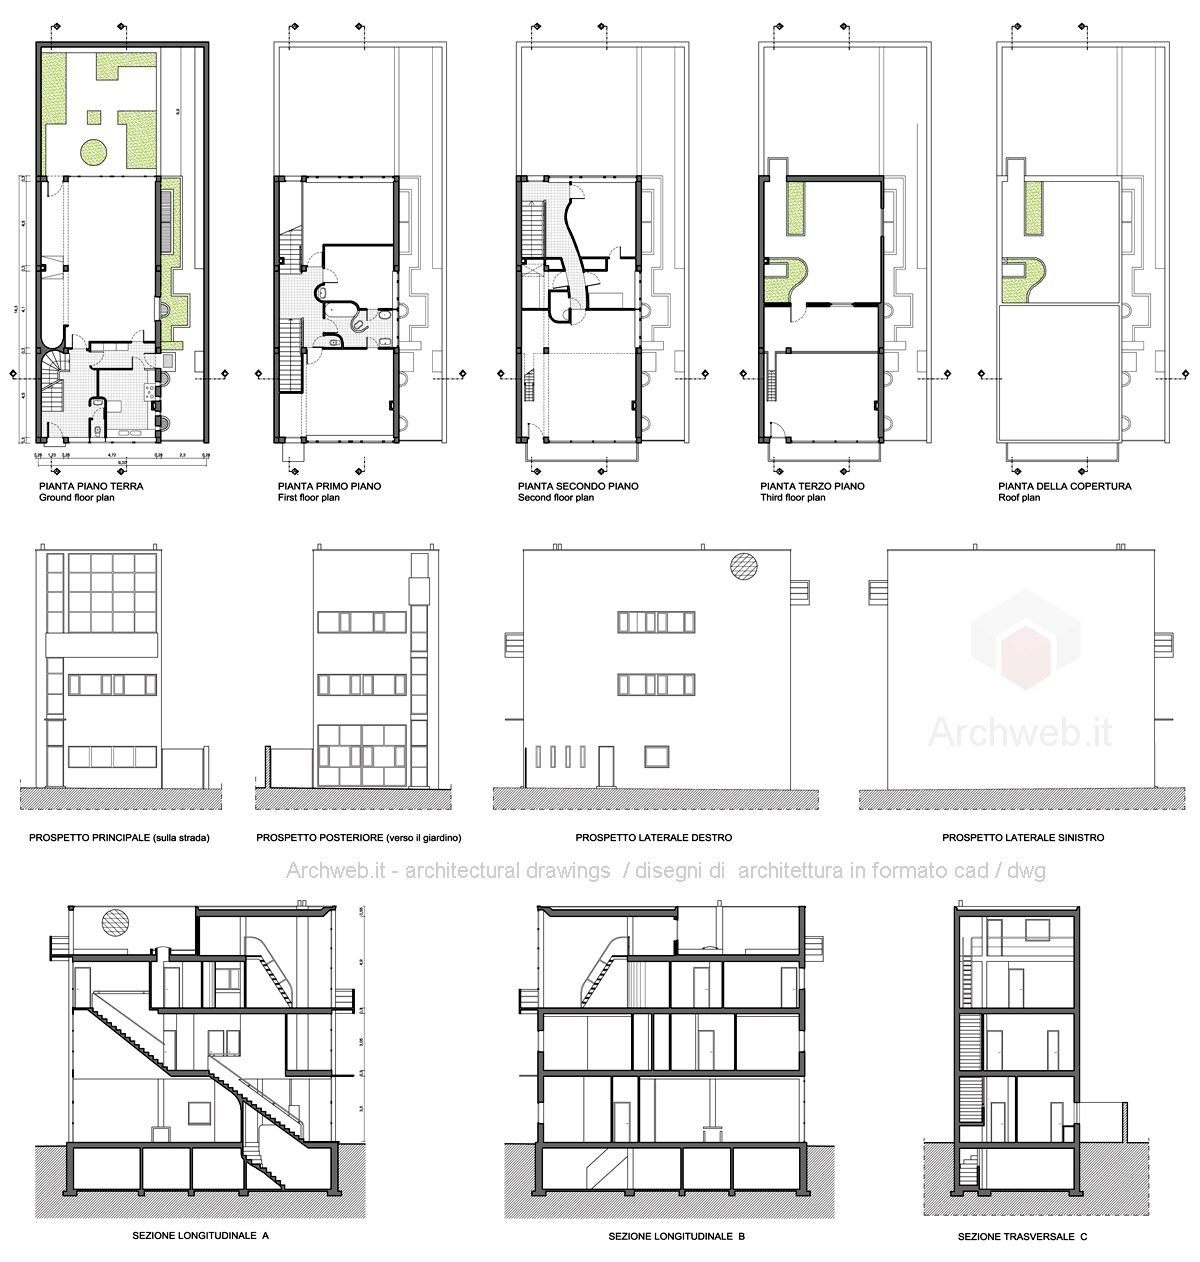 105764291222478005 together with Bungalow House Designs And Floor Plans In Philippines additionally 213134 in addition Bungalow Extension additionally Hamilton Renovation. on architectural designs house plans